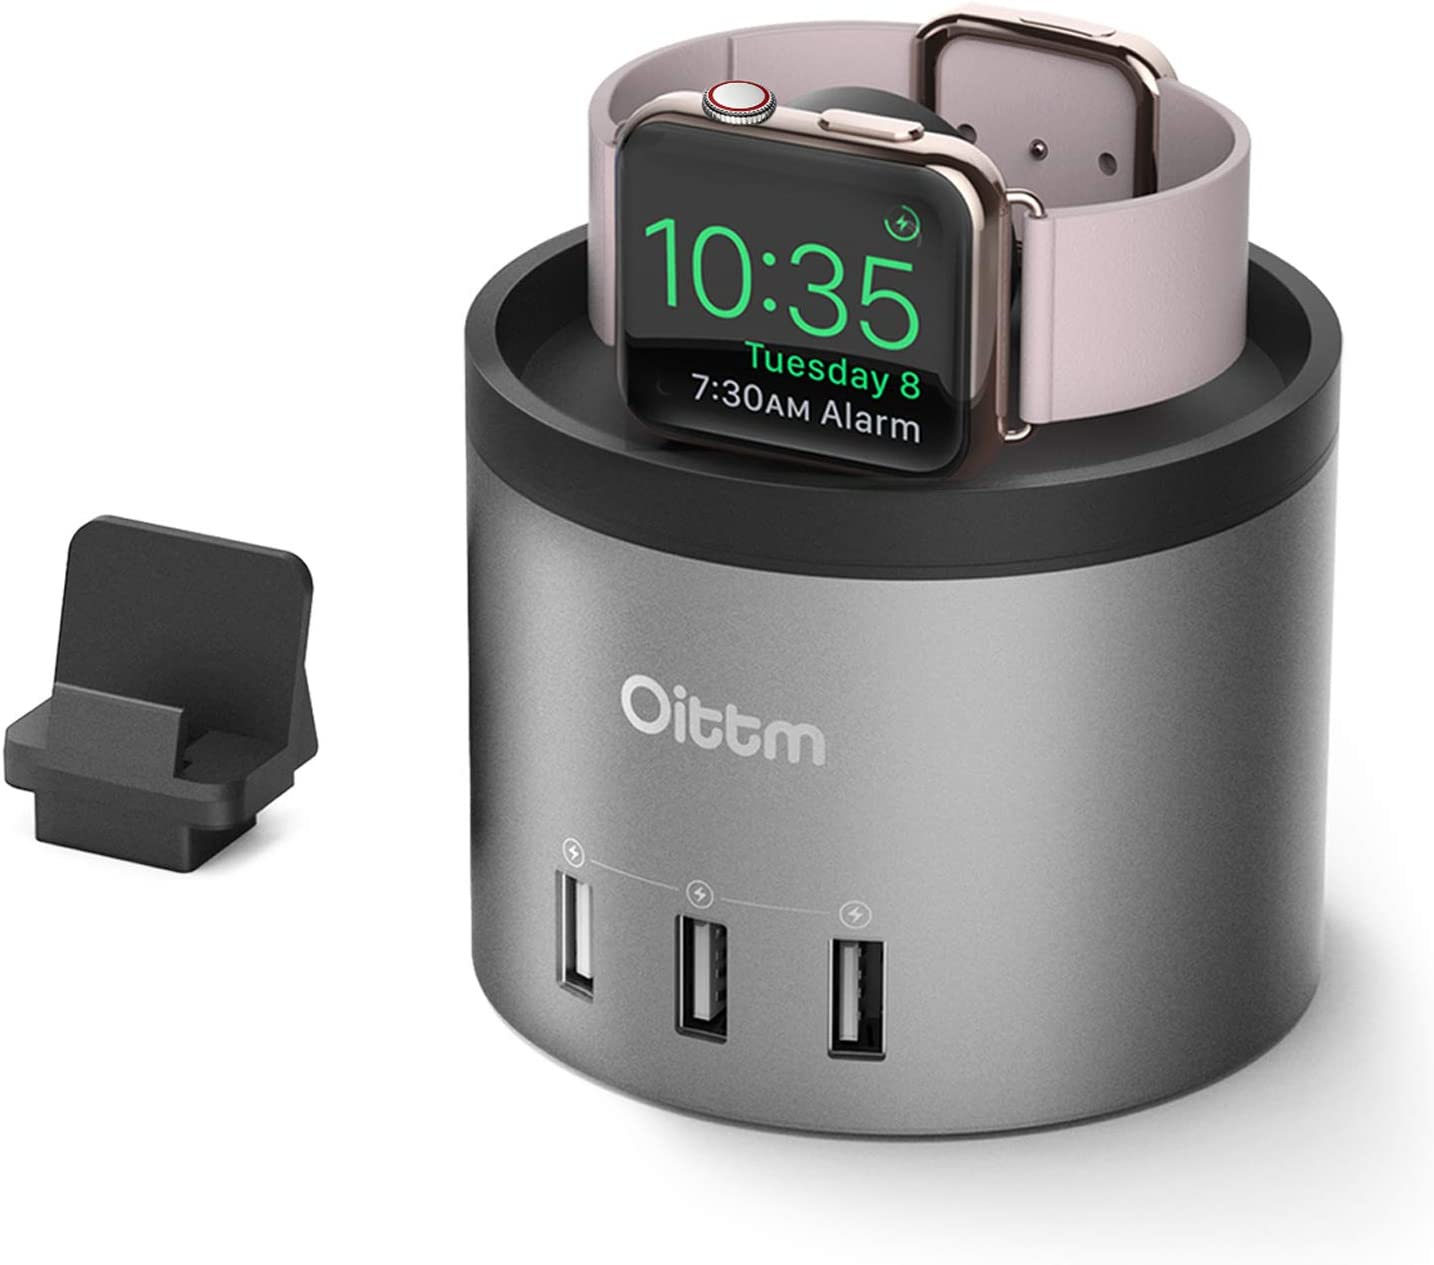 Oittm Charging Stand for Apple Watch Series 4 [2 in 1 Bracket Power Dock] 4-Port USB Charging Station w/Phone Holder for iPhone Xs, Xs Max, Xr, X, 8 Plus, 7, 6 Plus, iWatch 4/3/2/1 (Grey)